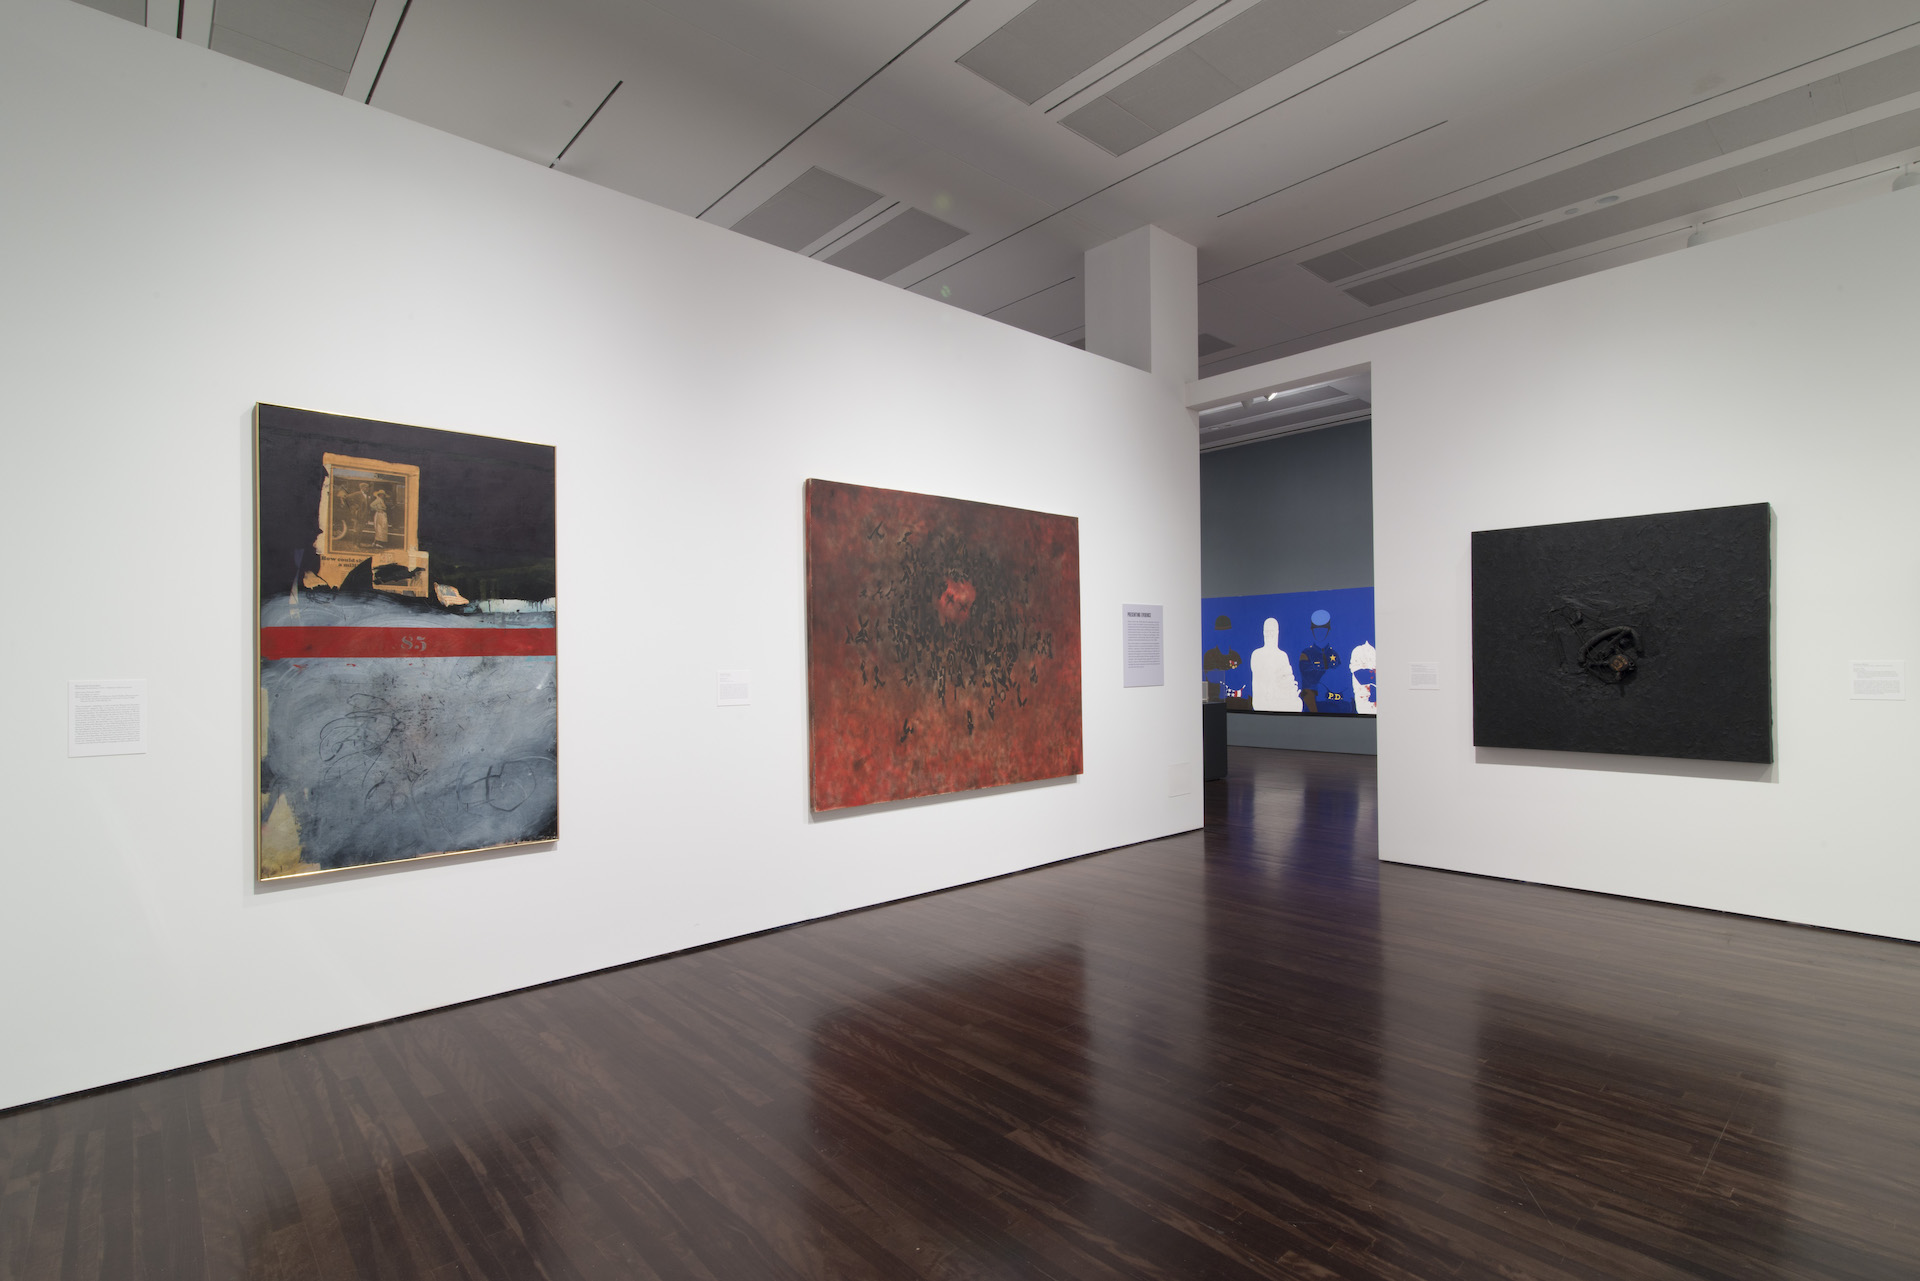 """Installation view of """"Witness: Art and Civil Rights in the Sixties"""" at theBlanton, several abstract artworks are hung on the gallery walls"""